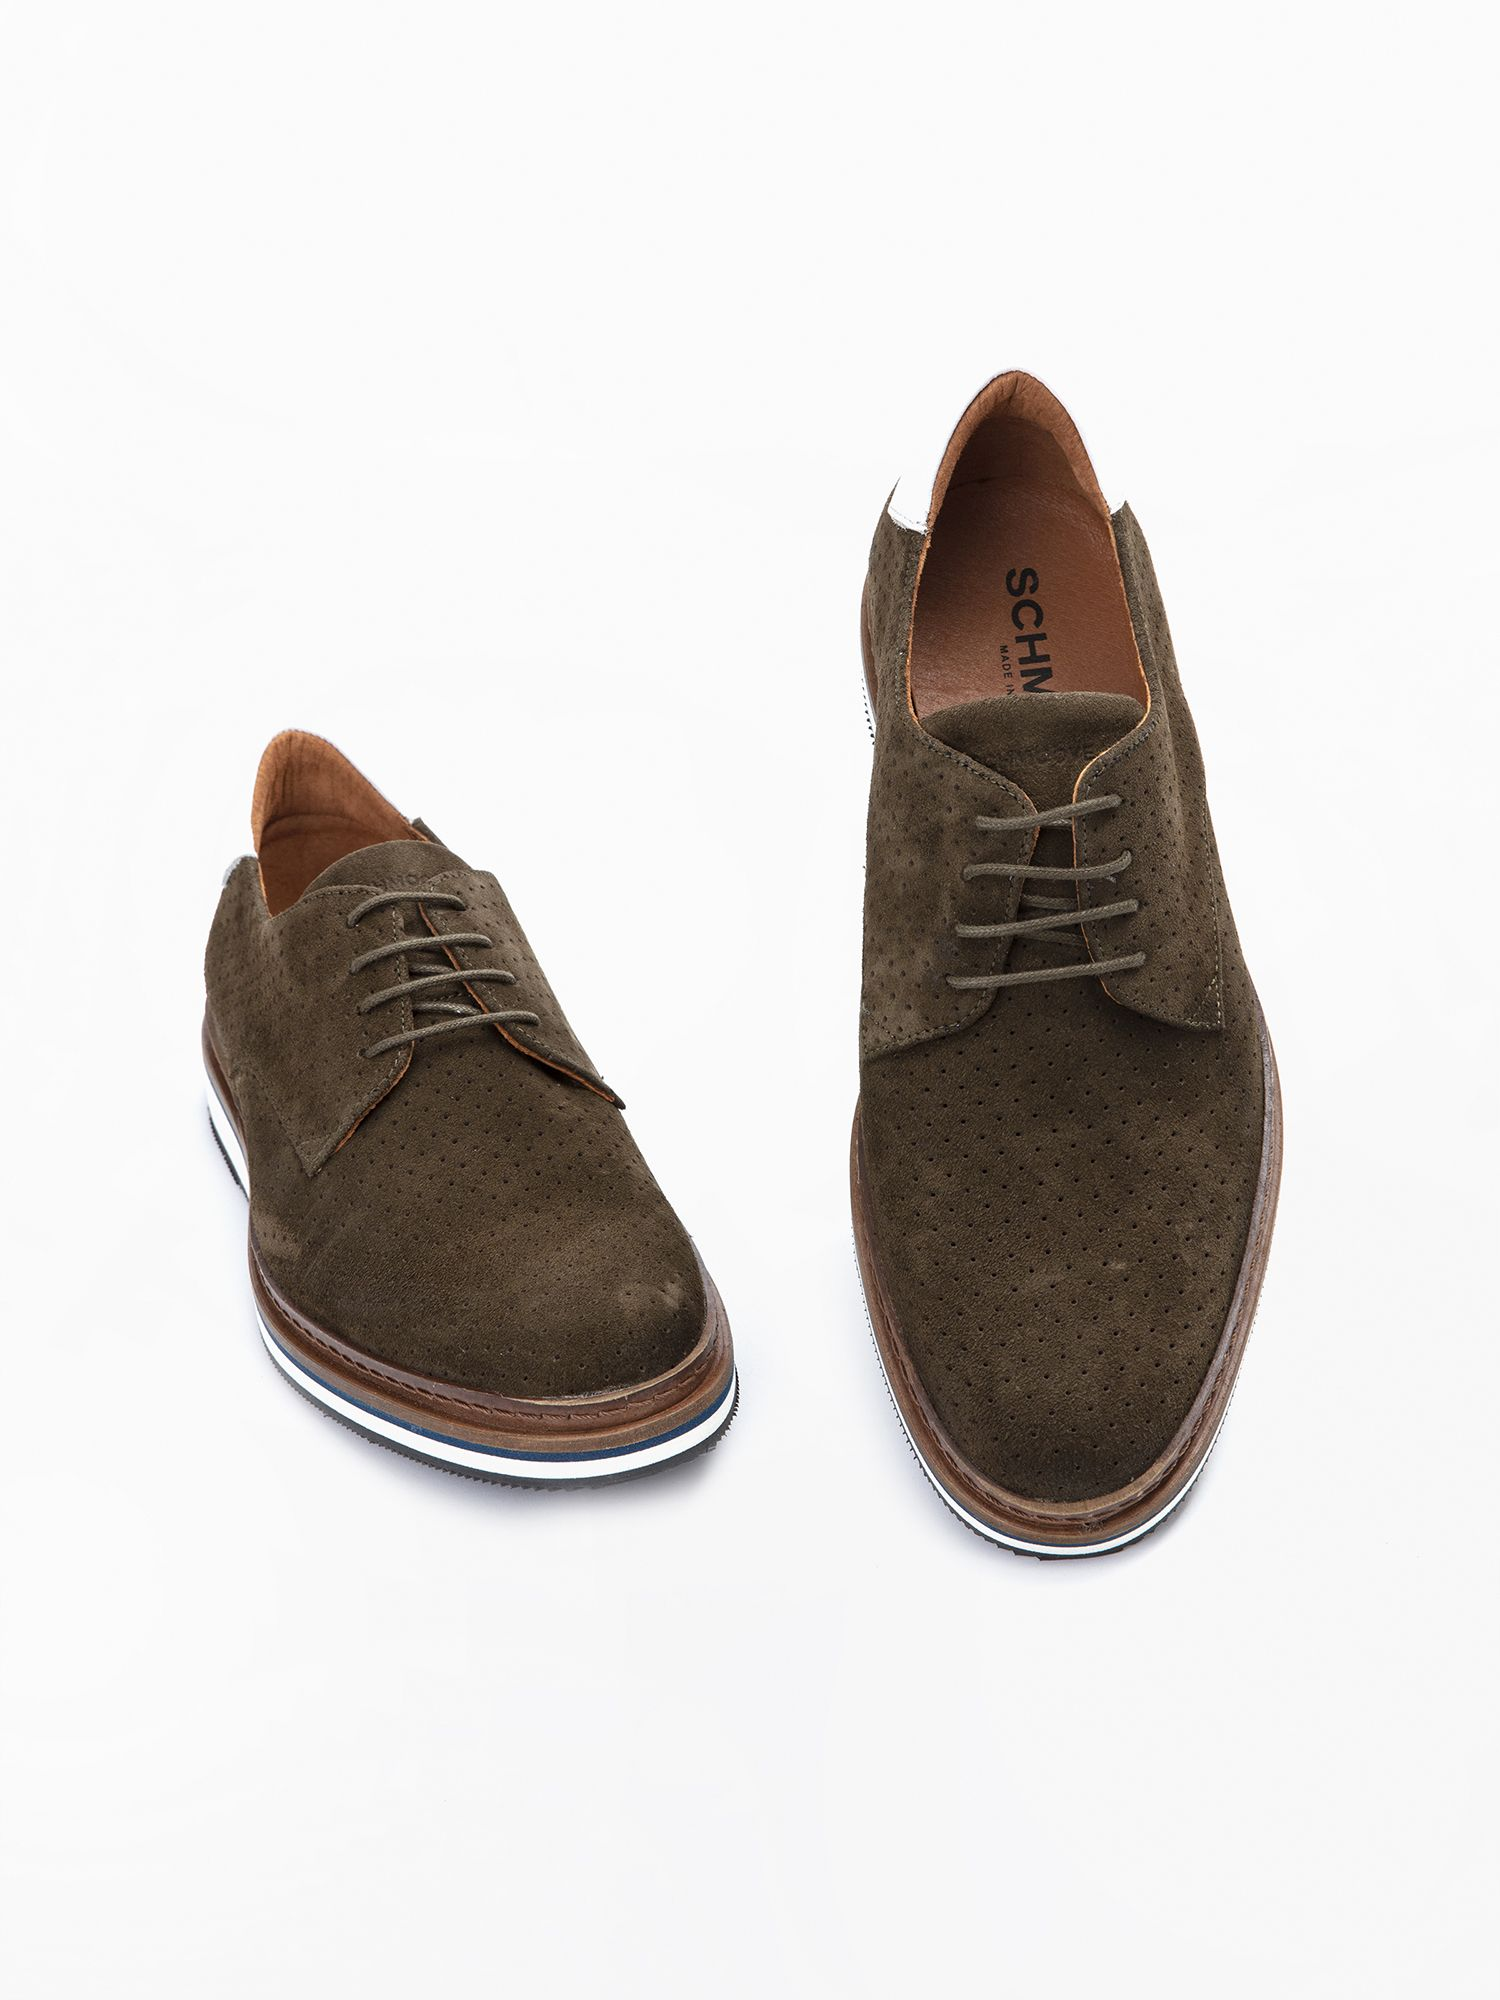 schmoove.fr Punch Derby - Punch Suede - Olive